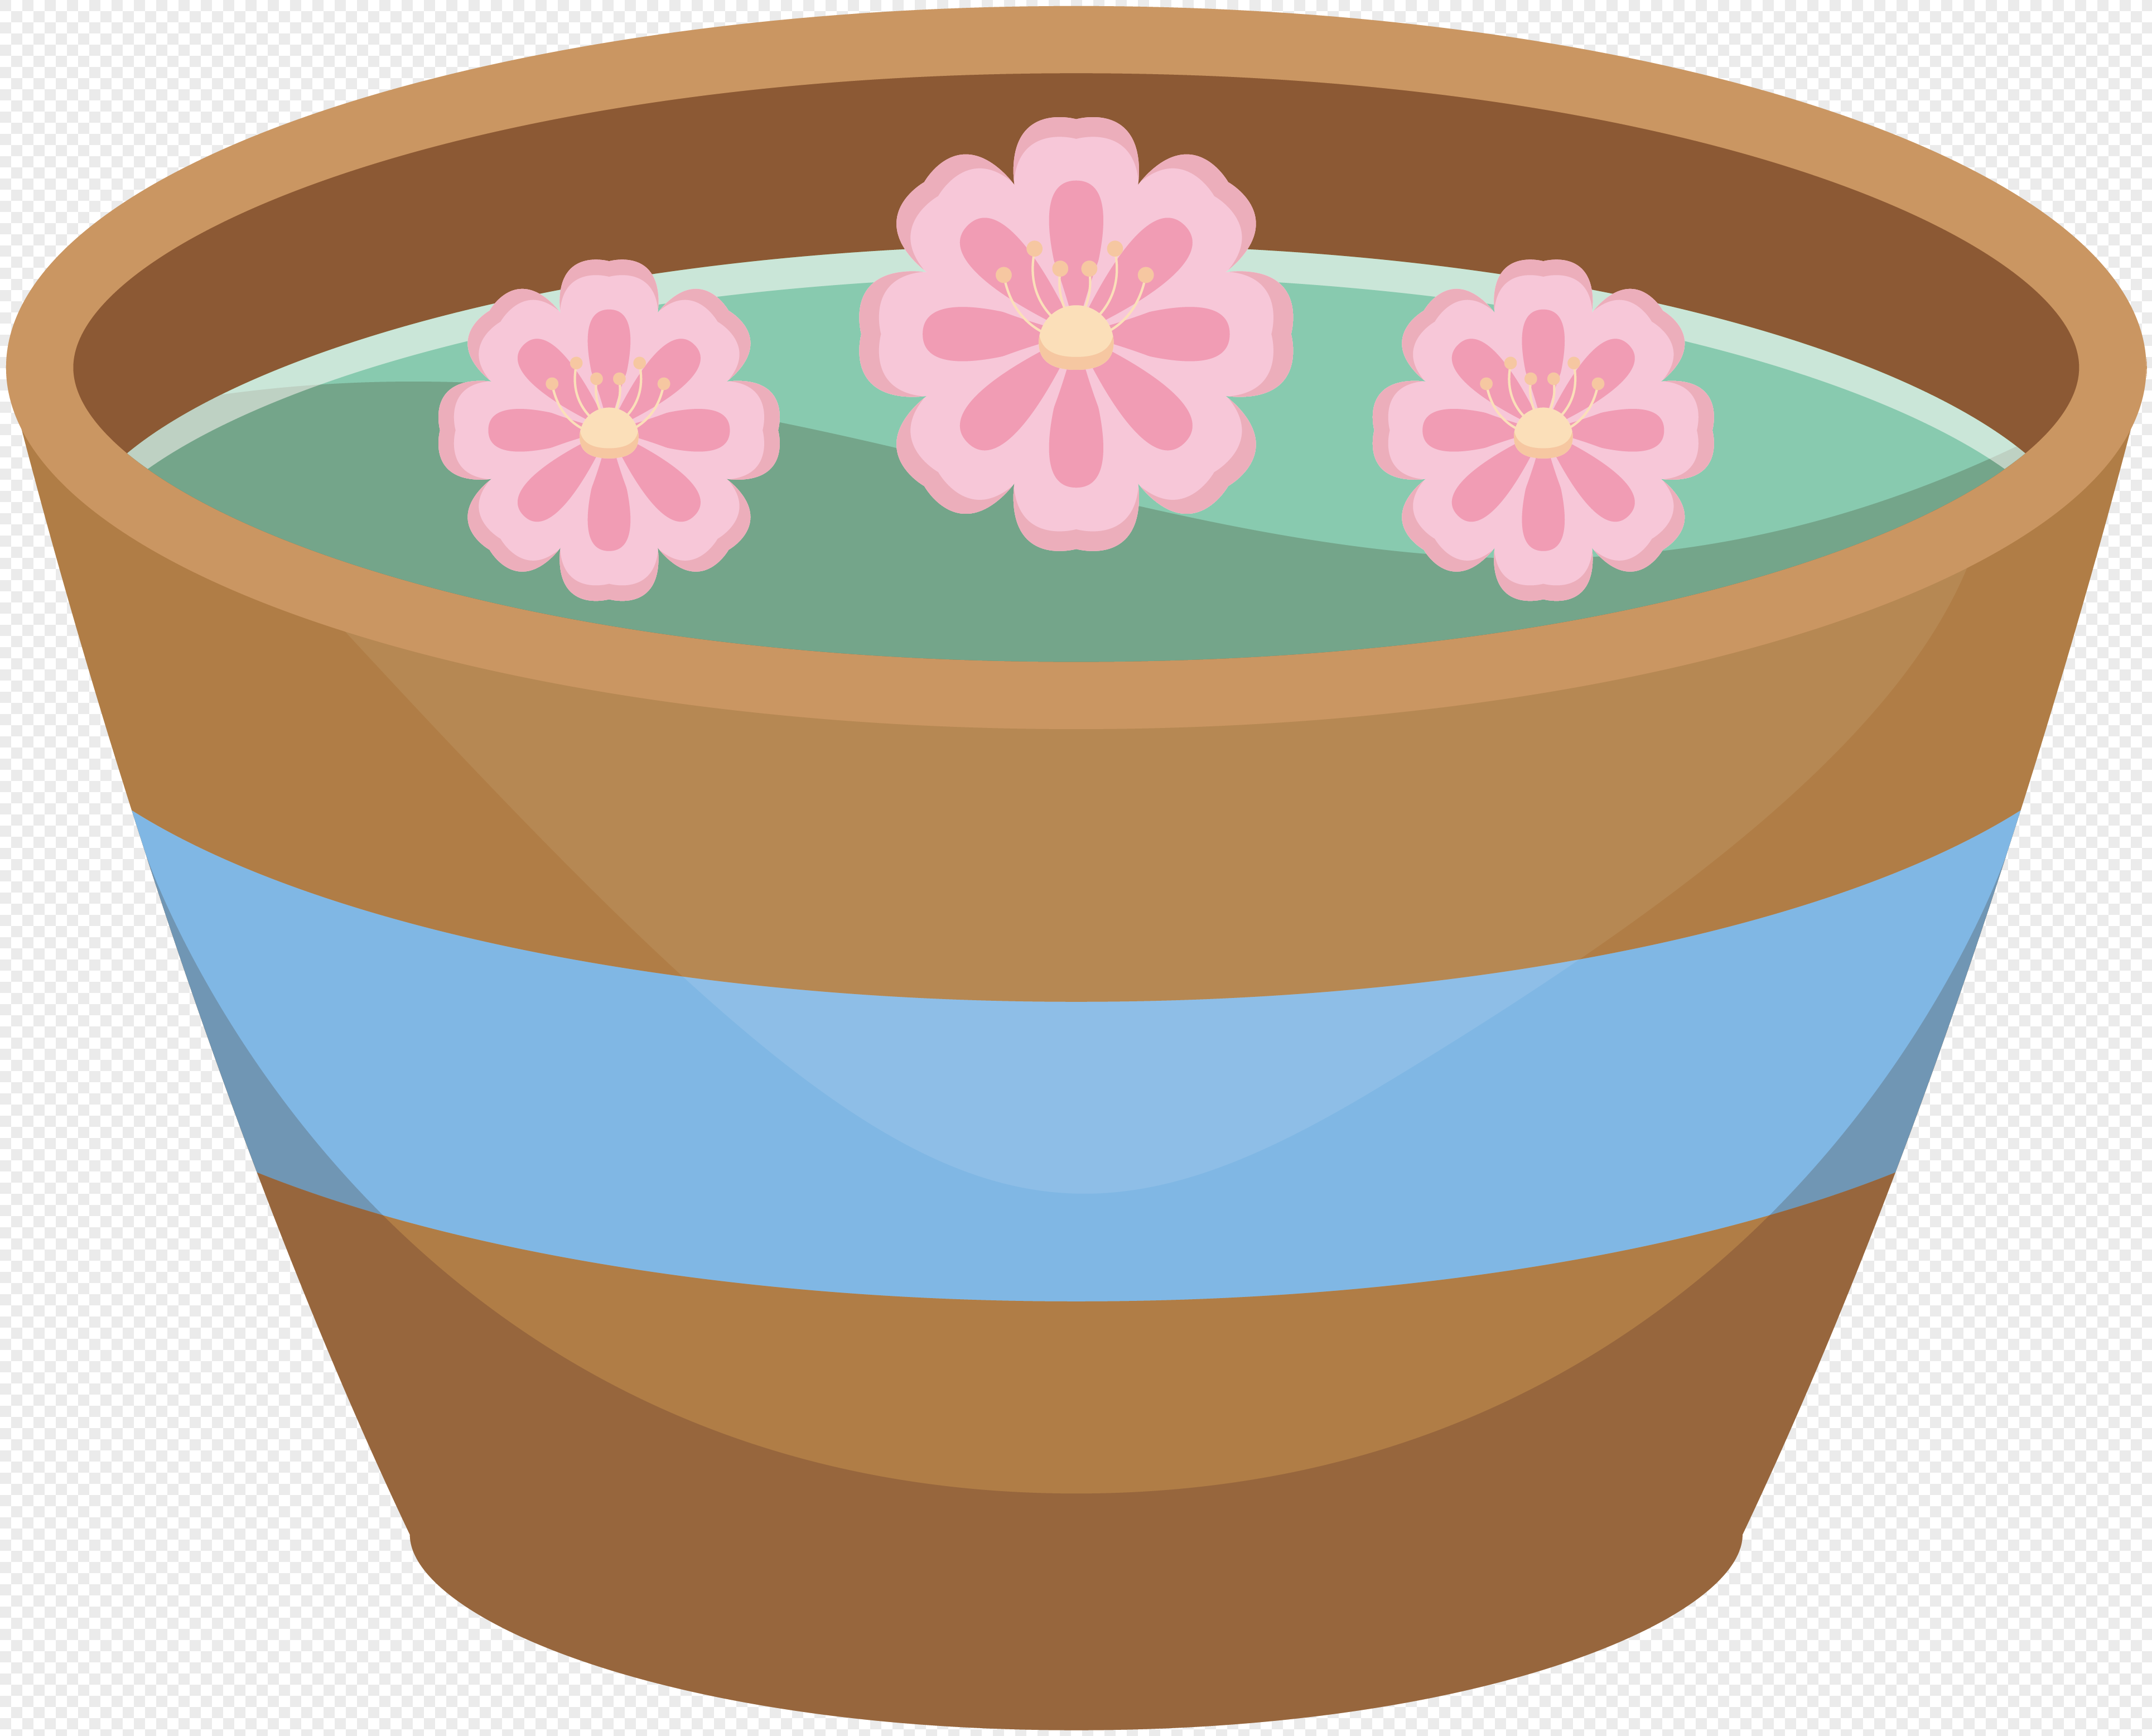 Foot tub vector image_picture 400325965_lovepik.com free download